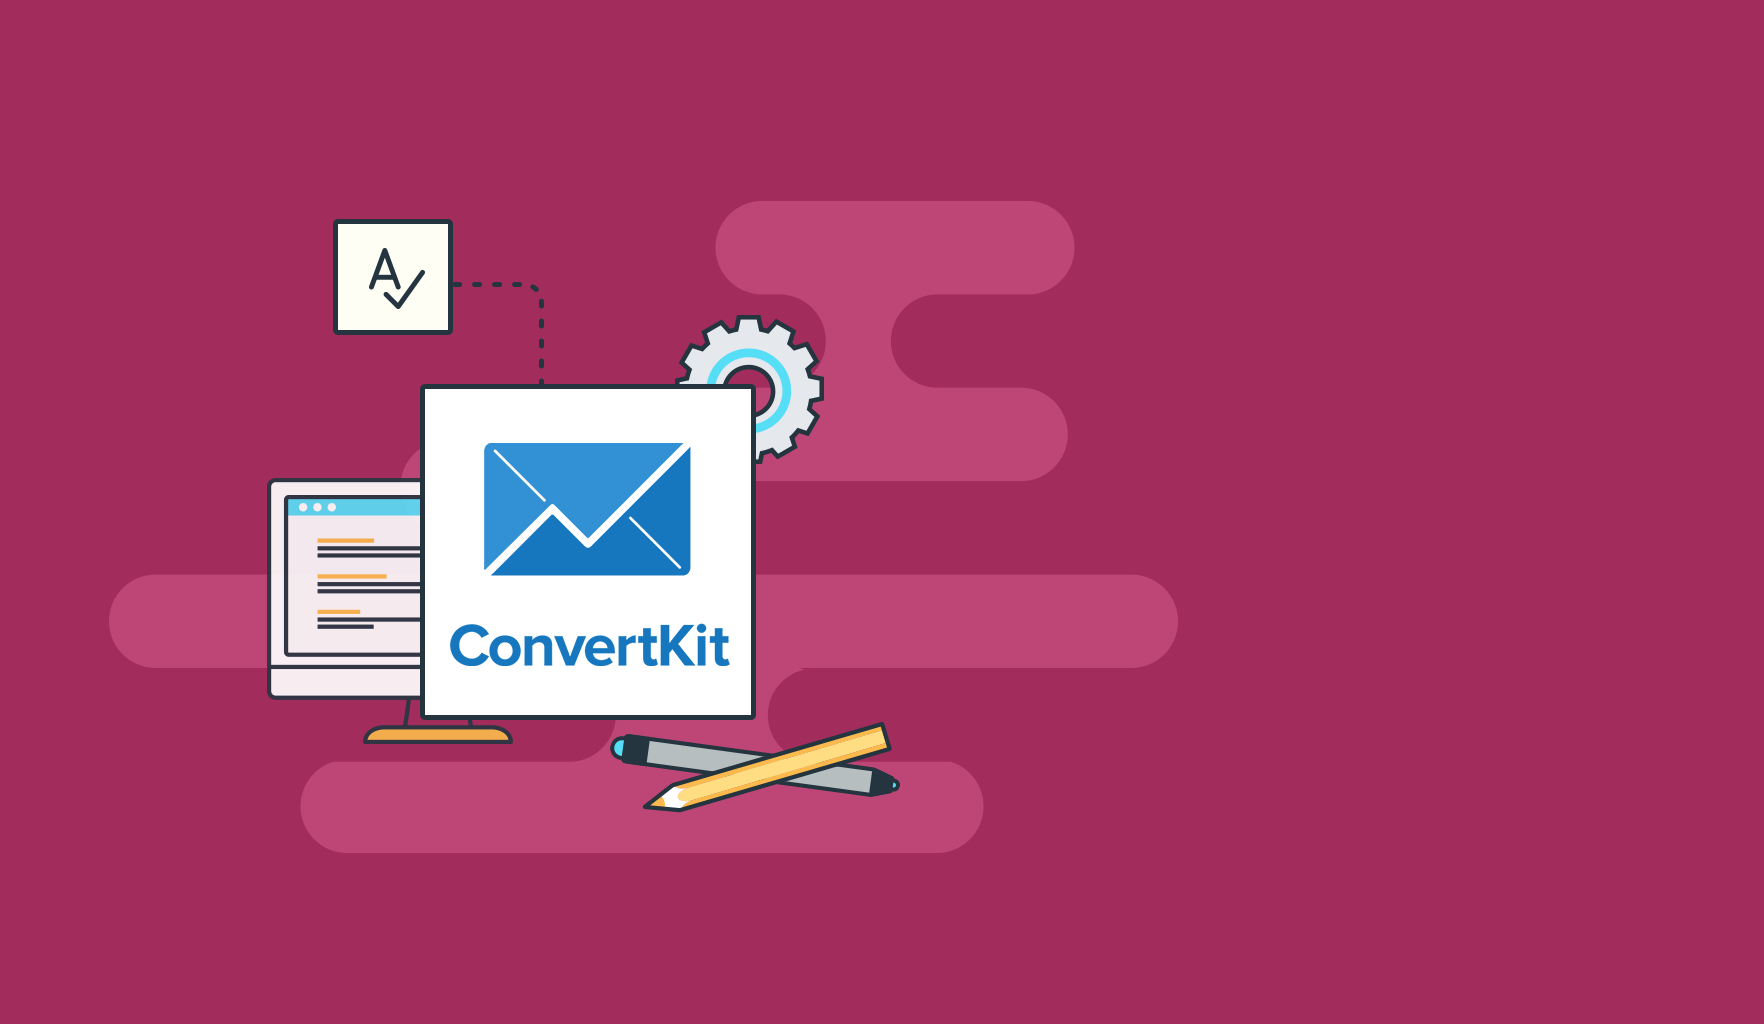 Savings Coupon Code Convertkit Email Marketing 2020